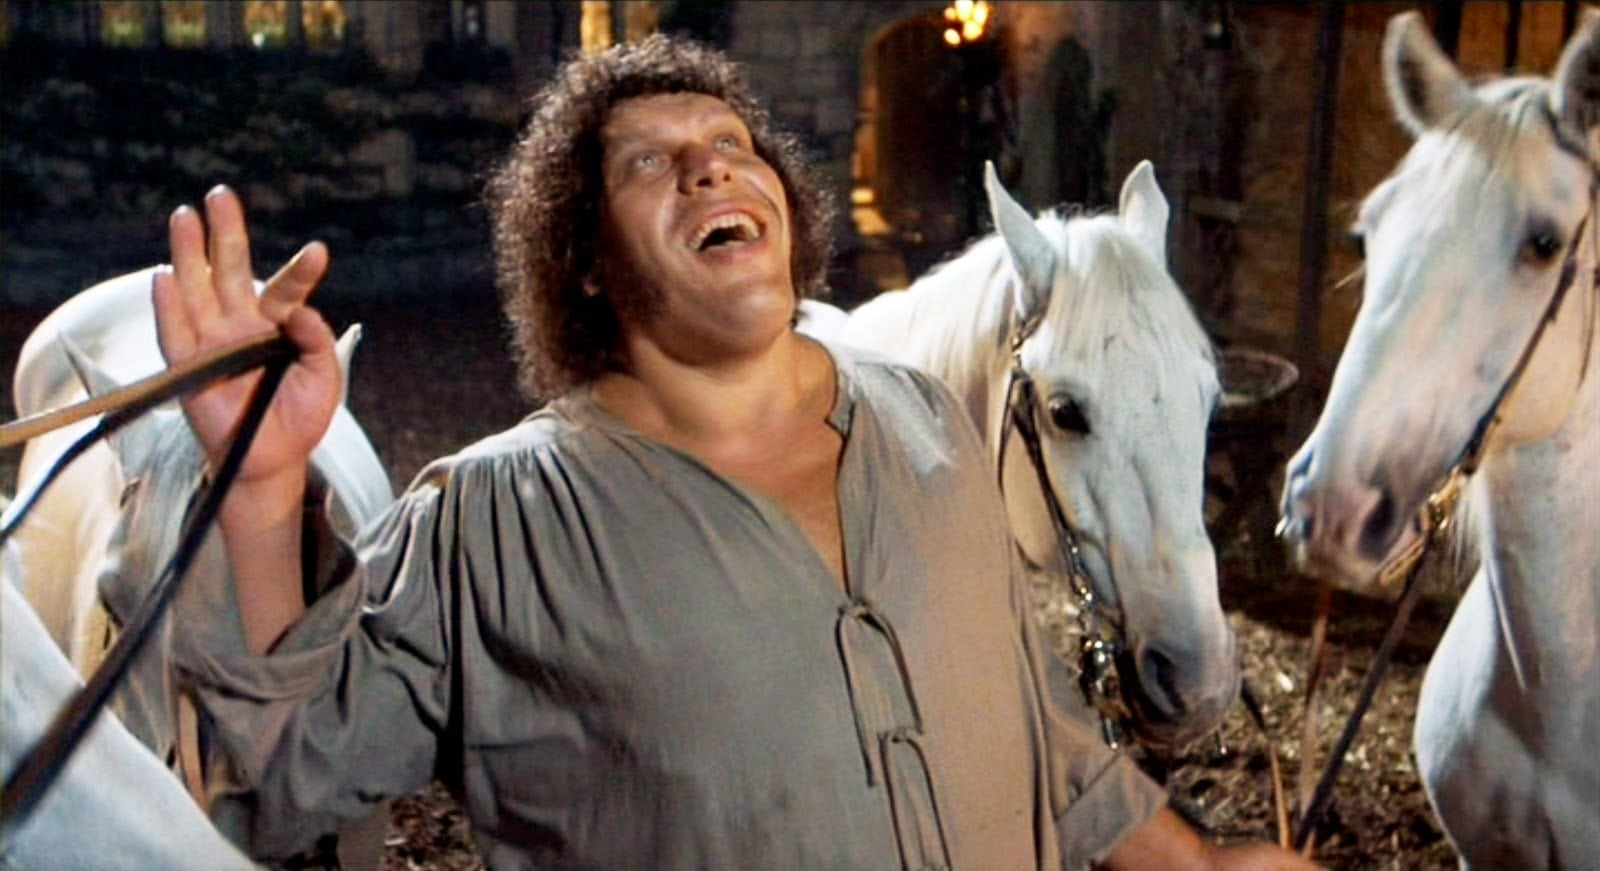 andre roussimoff andre the giant laughing smiling the princess bride horse wrestler wrestling